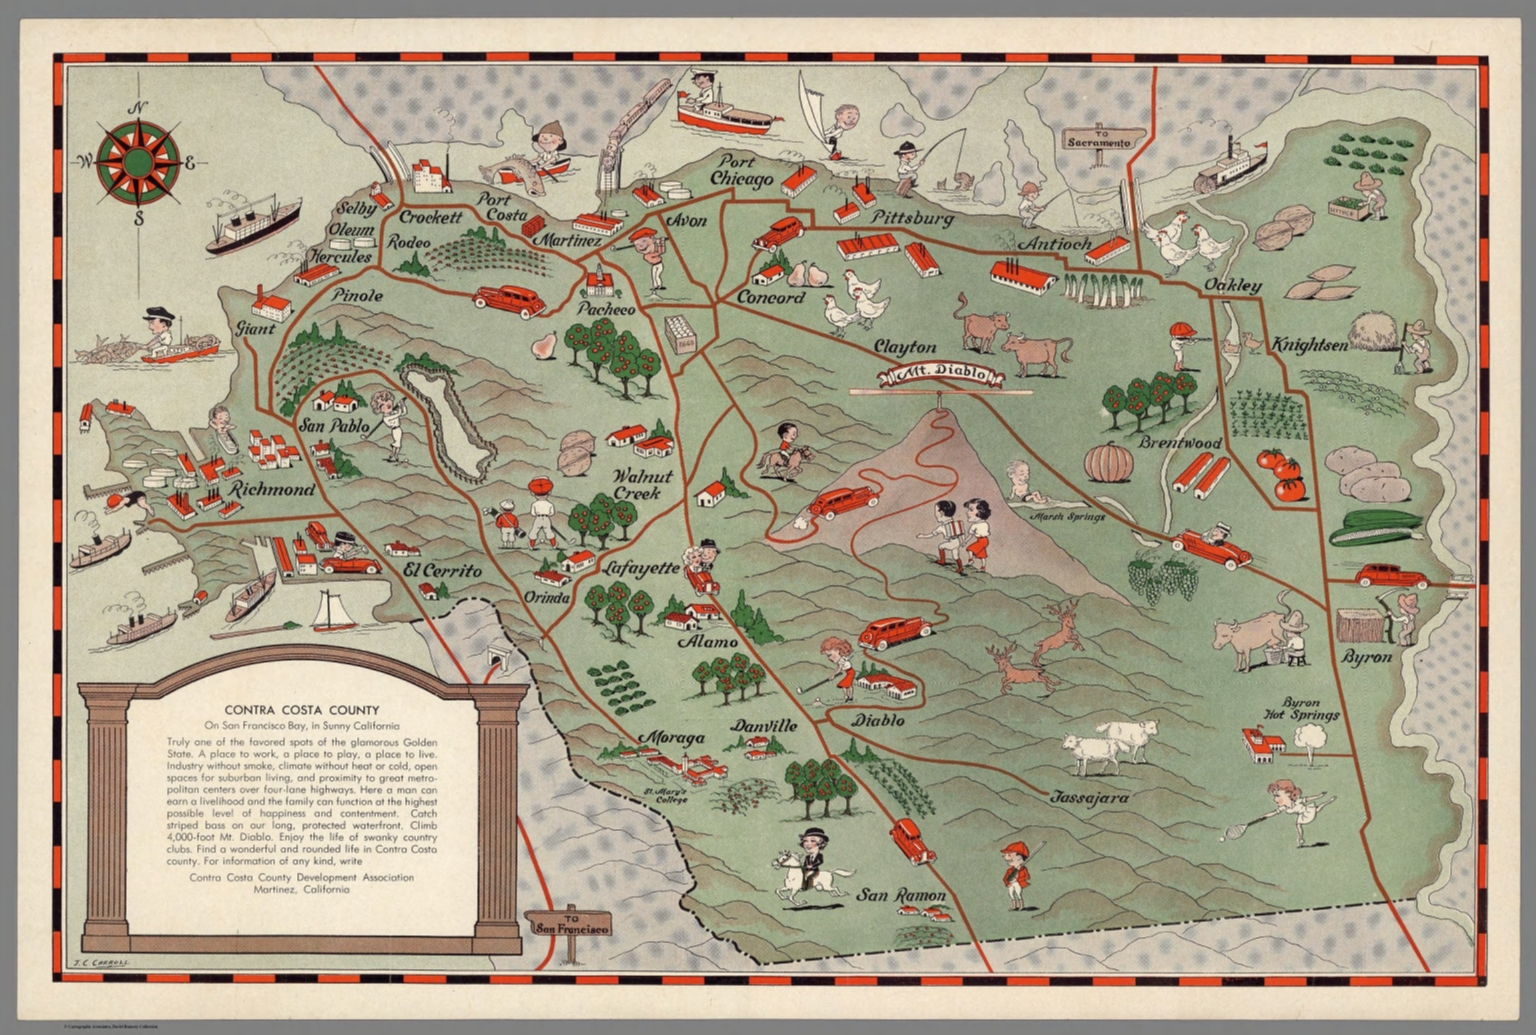 Image of: Contra Costa County On San Francisco Bay In Sunny California David Rumsey Historical Map Collection